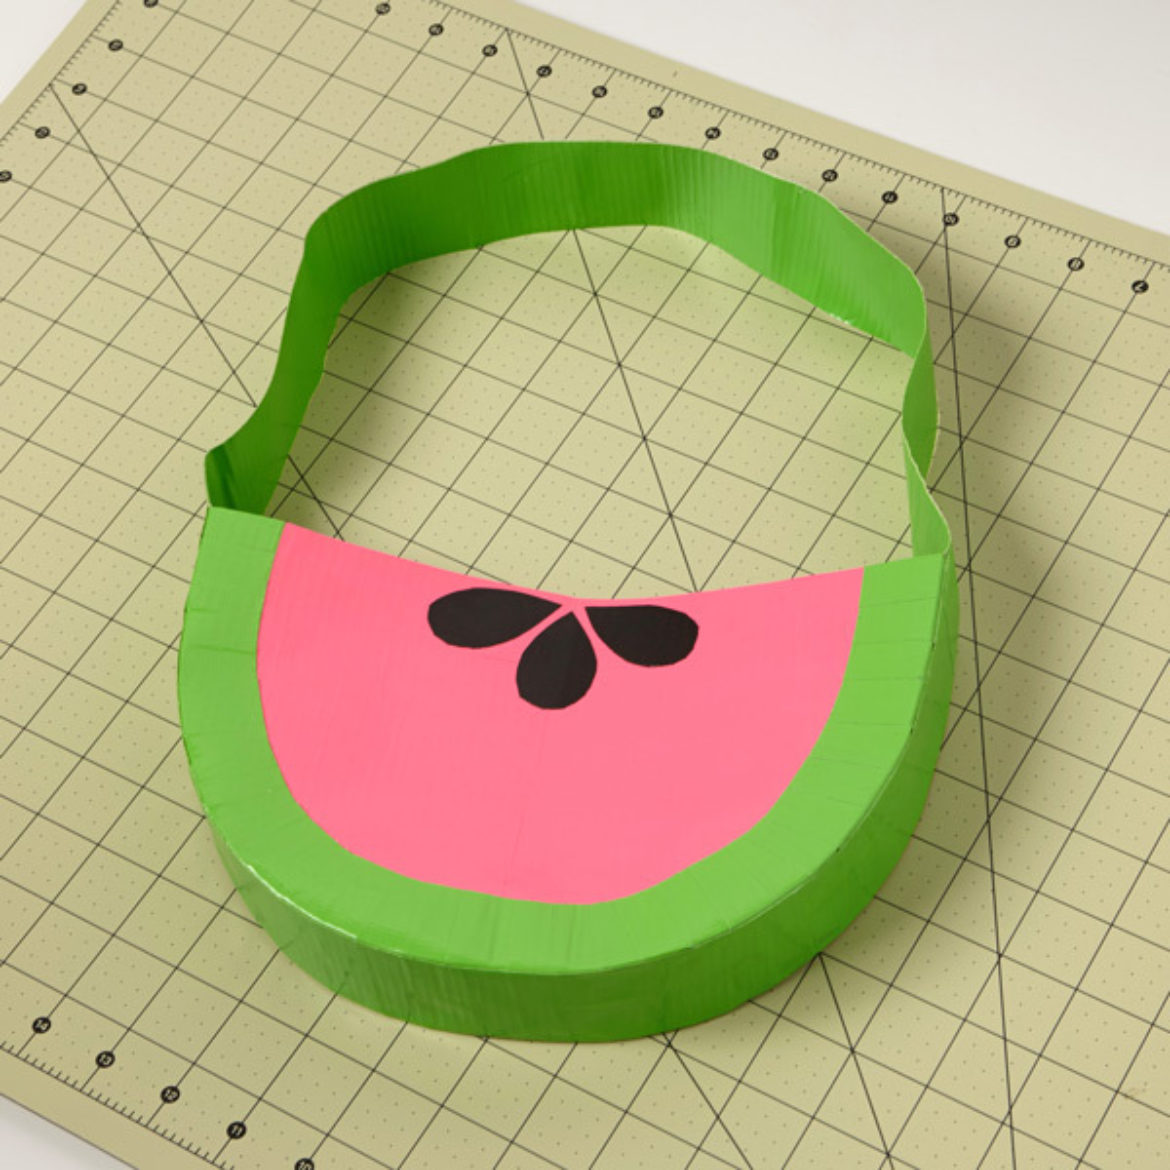 Finished Duck Tape fruit themed bag with the seeds from previous step attached